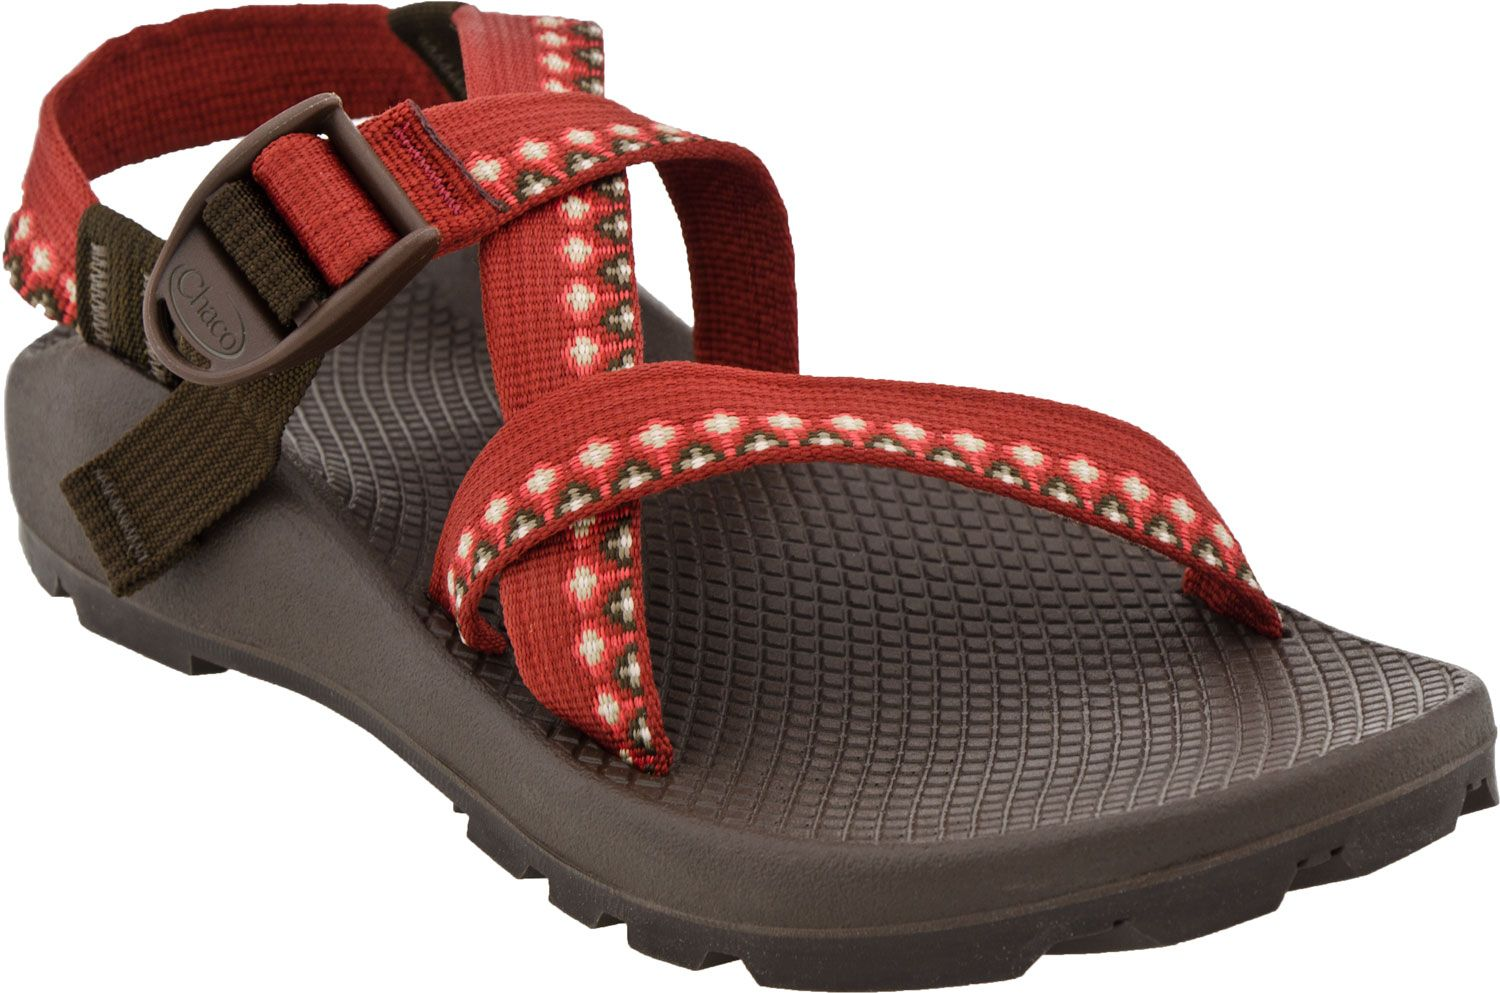 f661254b707d Chaco sandals - Chaco Z1 Vibram Unaweep Womens from www.planetshoes ...